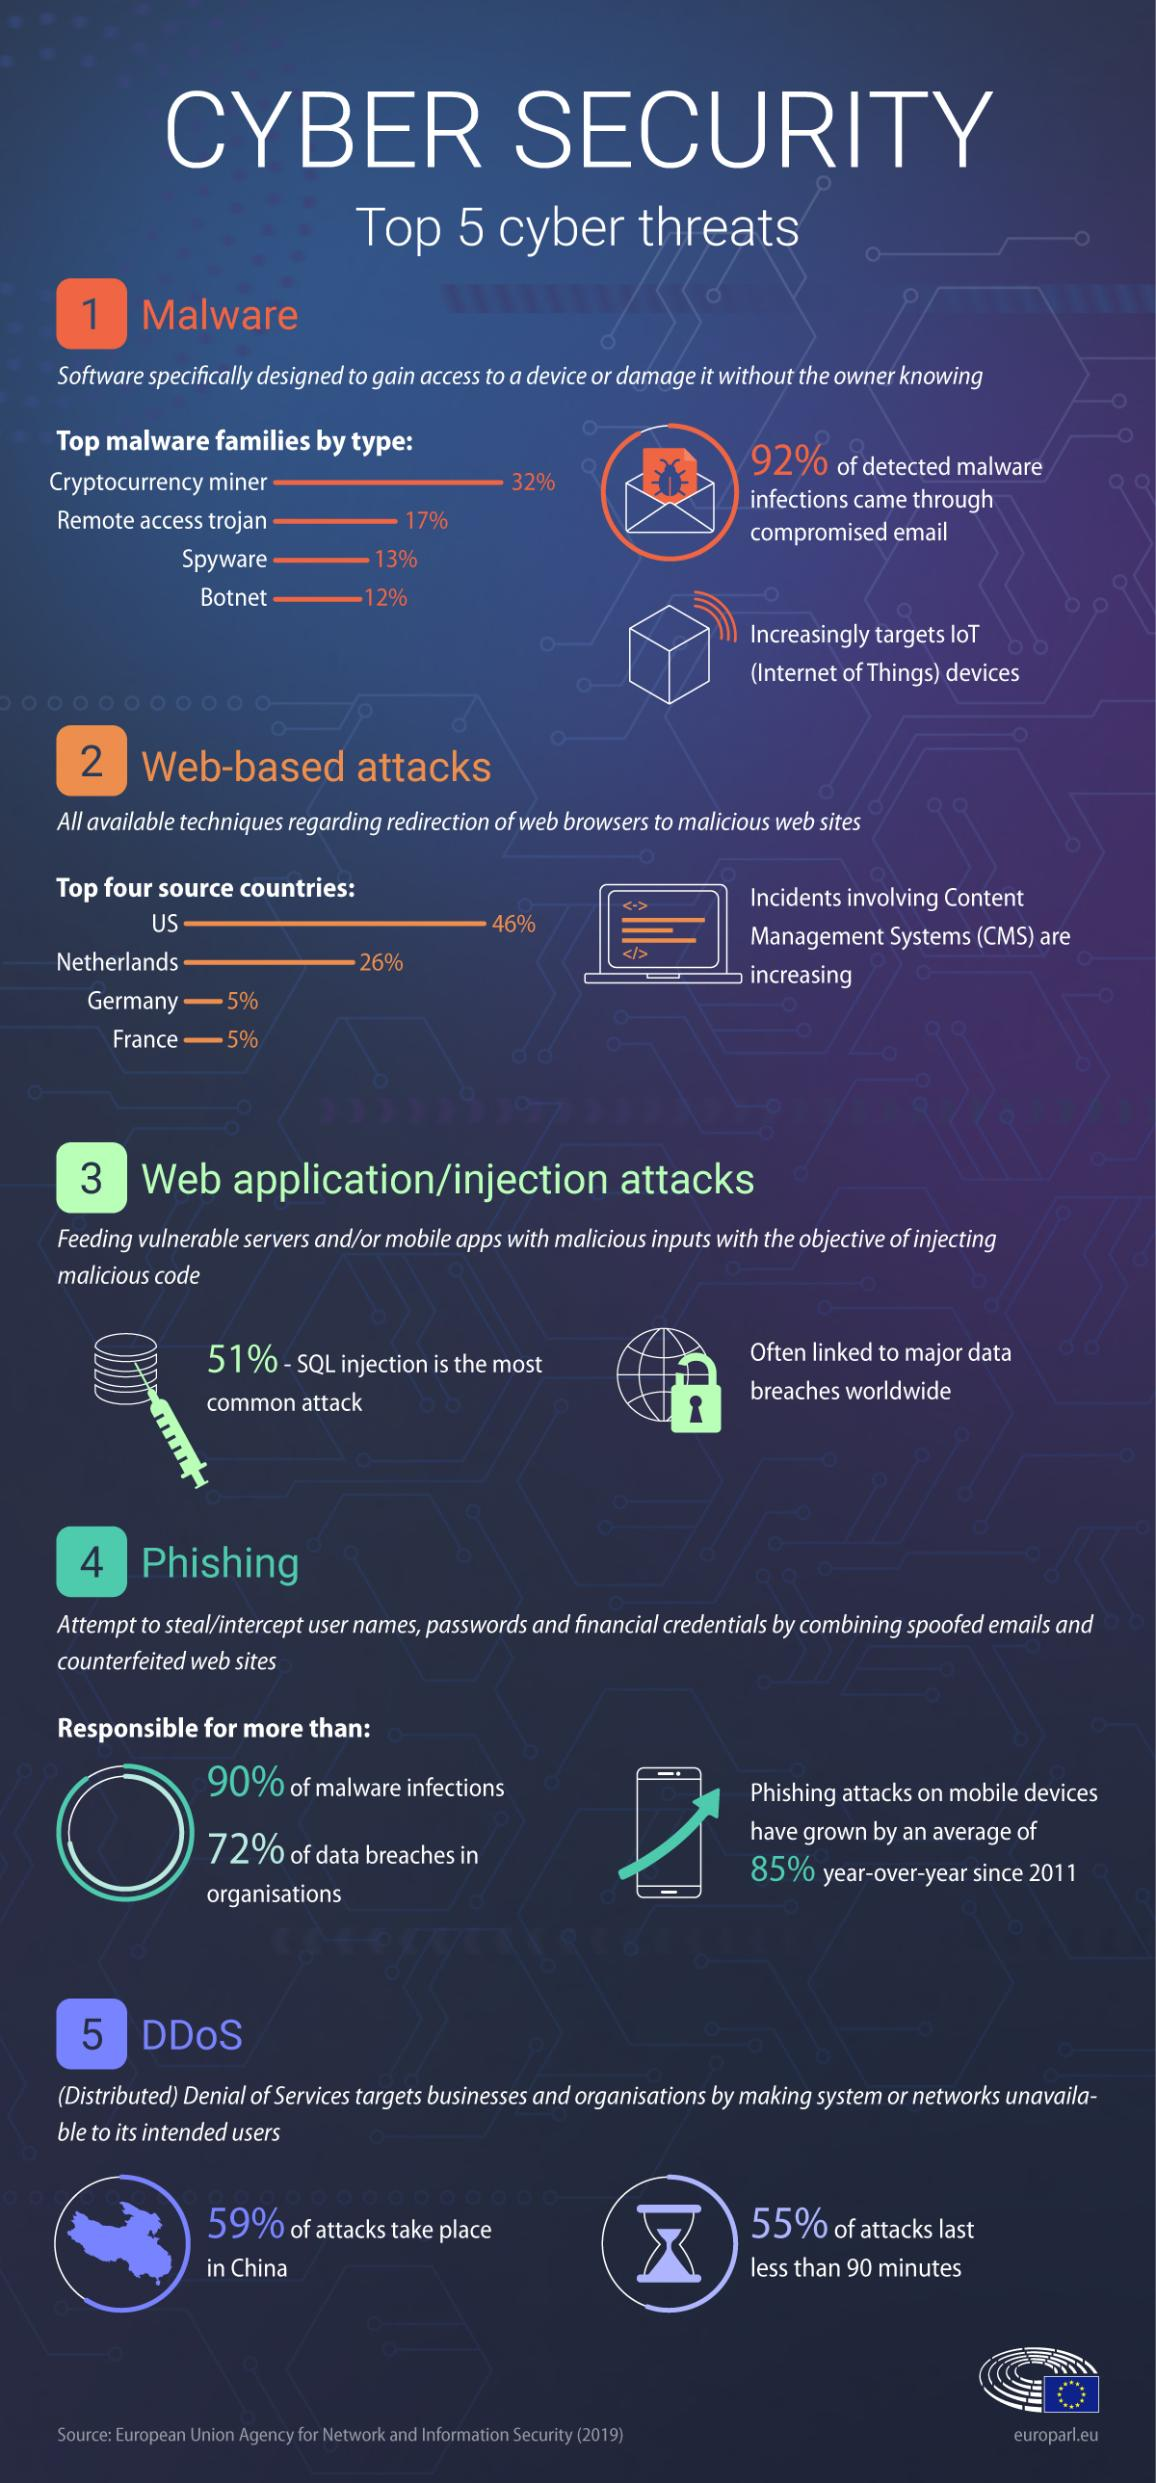 Meps Work To Boost Europe S Cyber Security Infographic